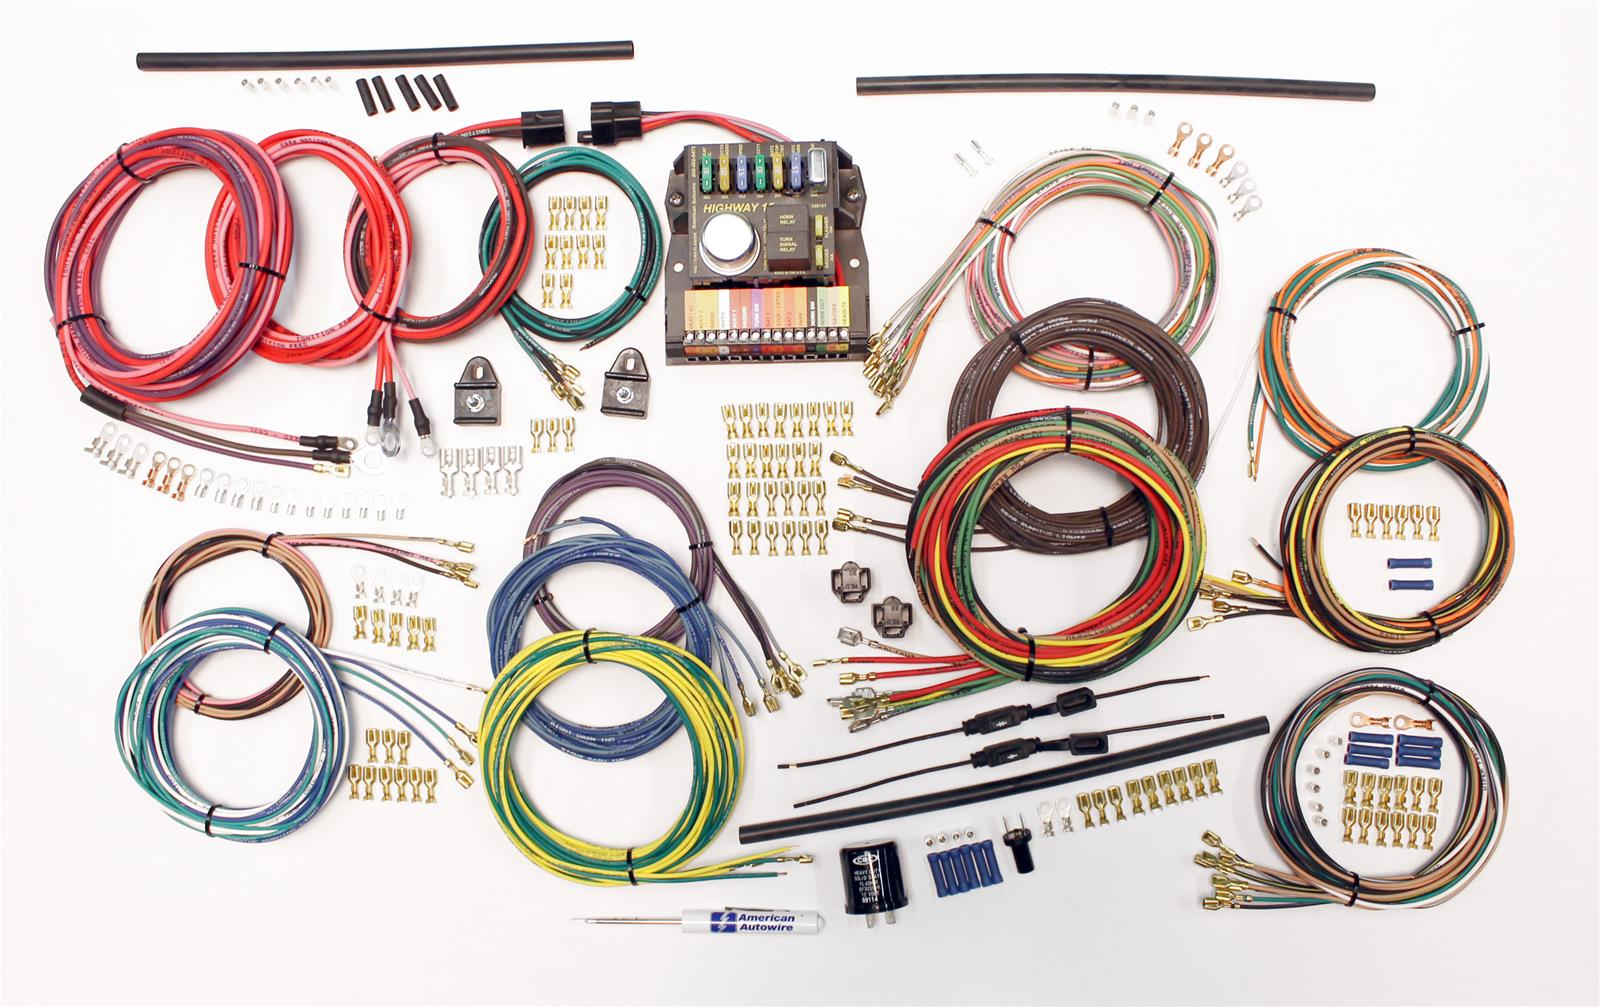 American Autowire Classic Update Series Wiring Harness Kits 510419 1970 Volkswagen Beetle Diagram Free Shipping On Orders Over 49 1971